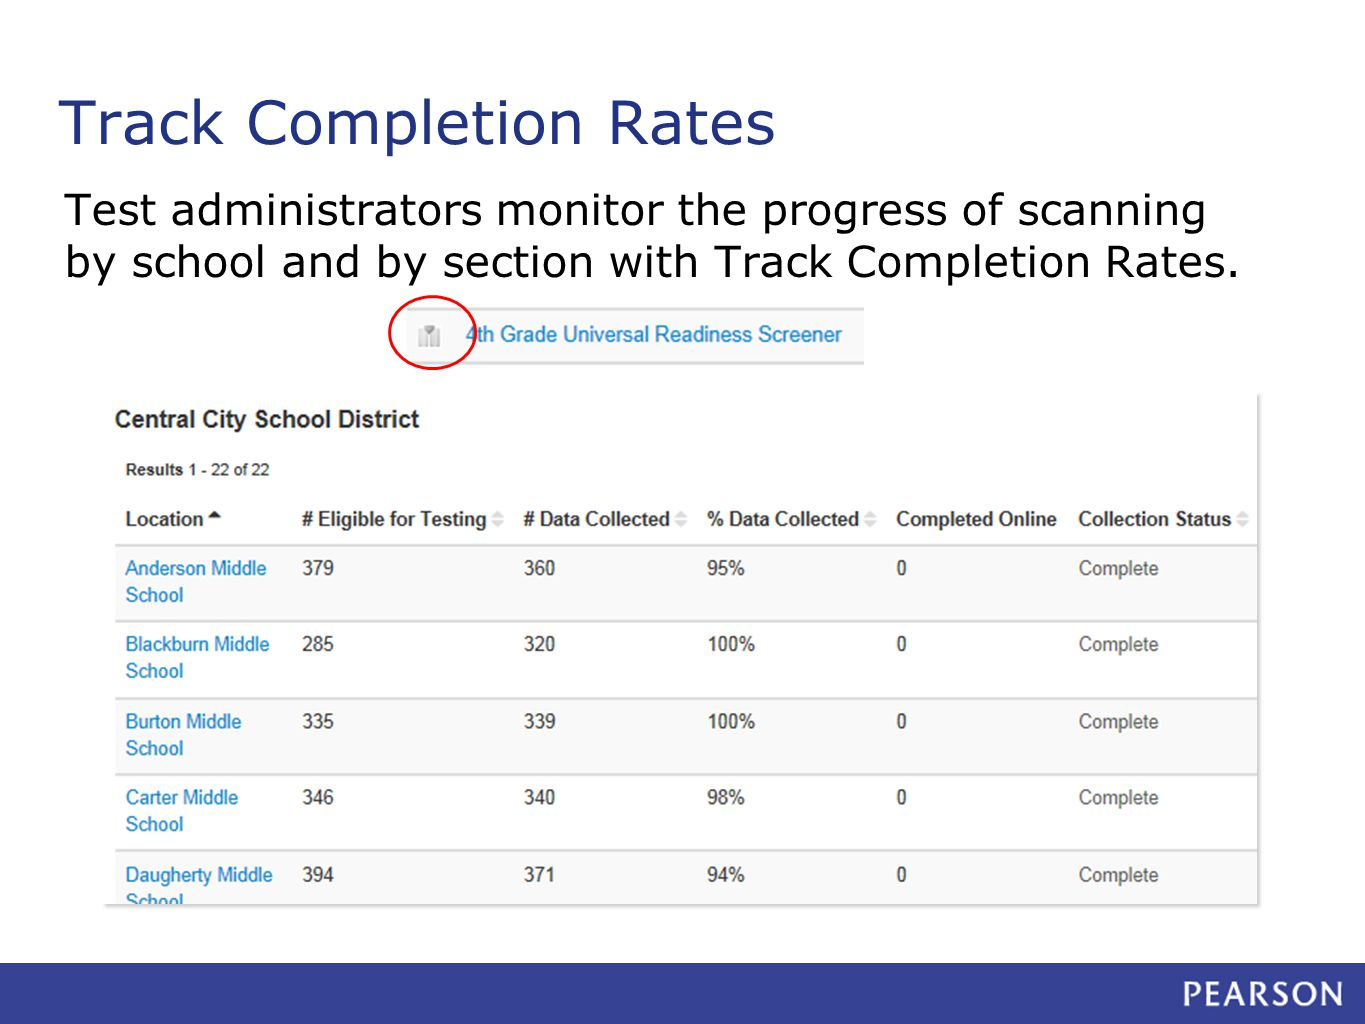 Track Completion Rates Test administrators monitor the progress of scanning by school and by section with Track Completion Rates.